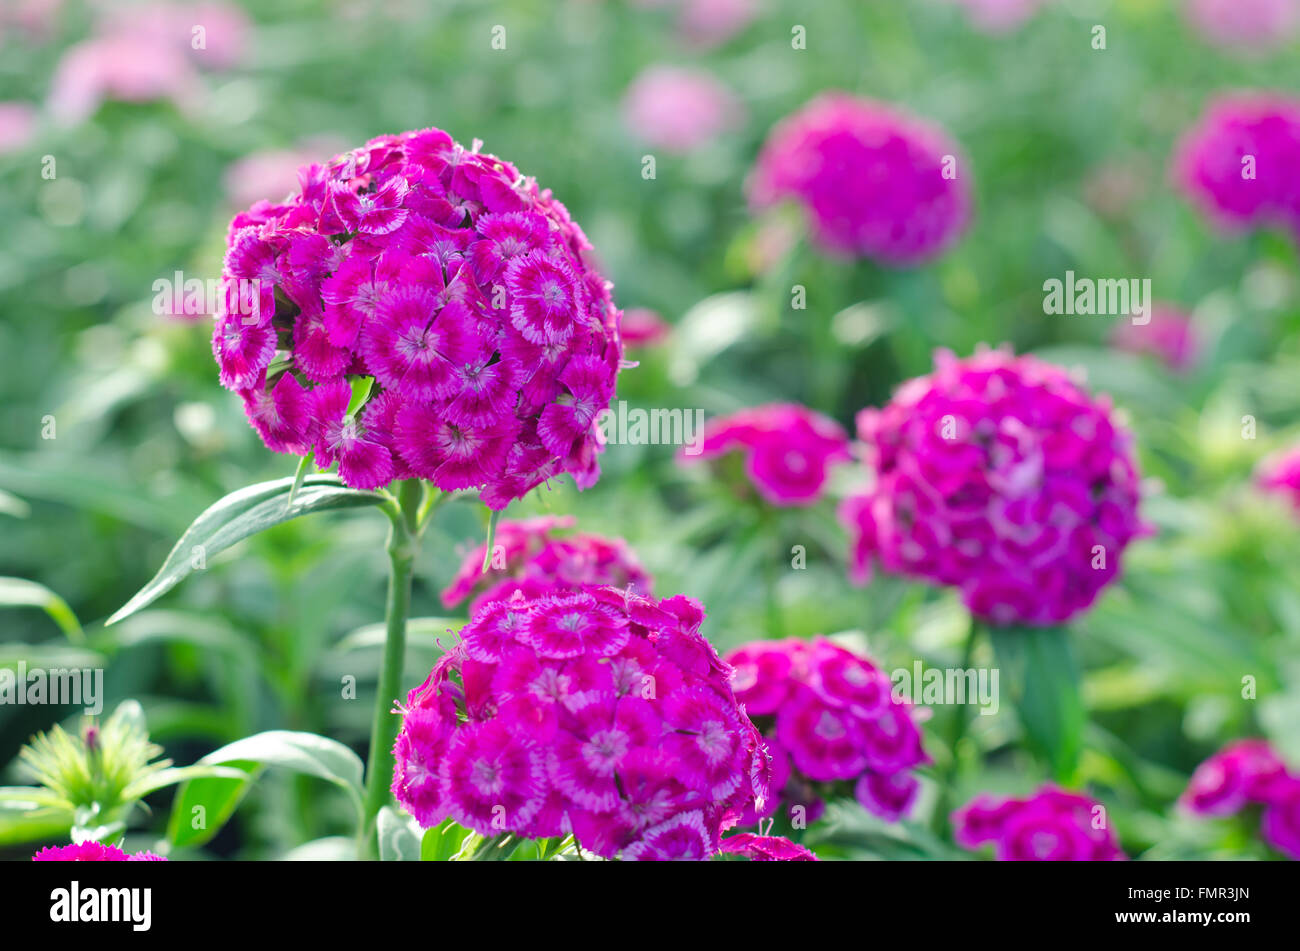 Dianthus Chinensis China Pink Sweet William Flower Stock Photo